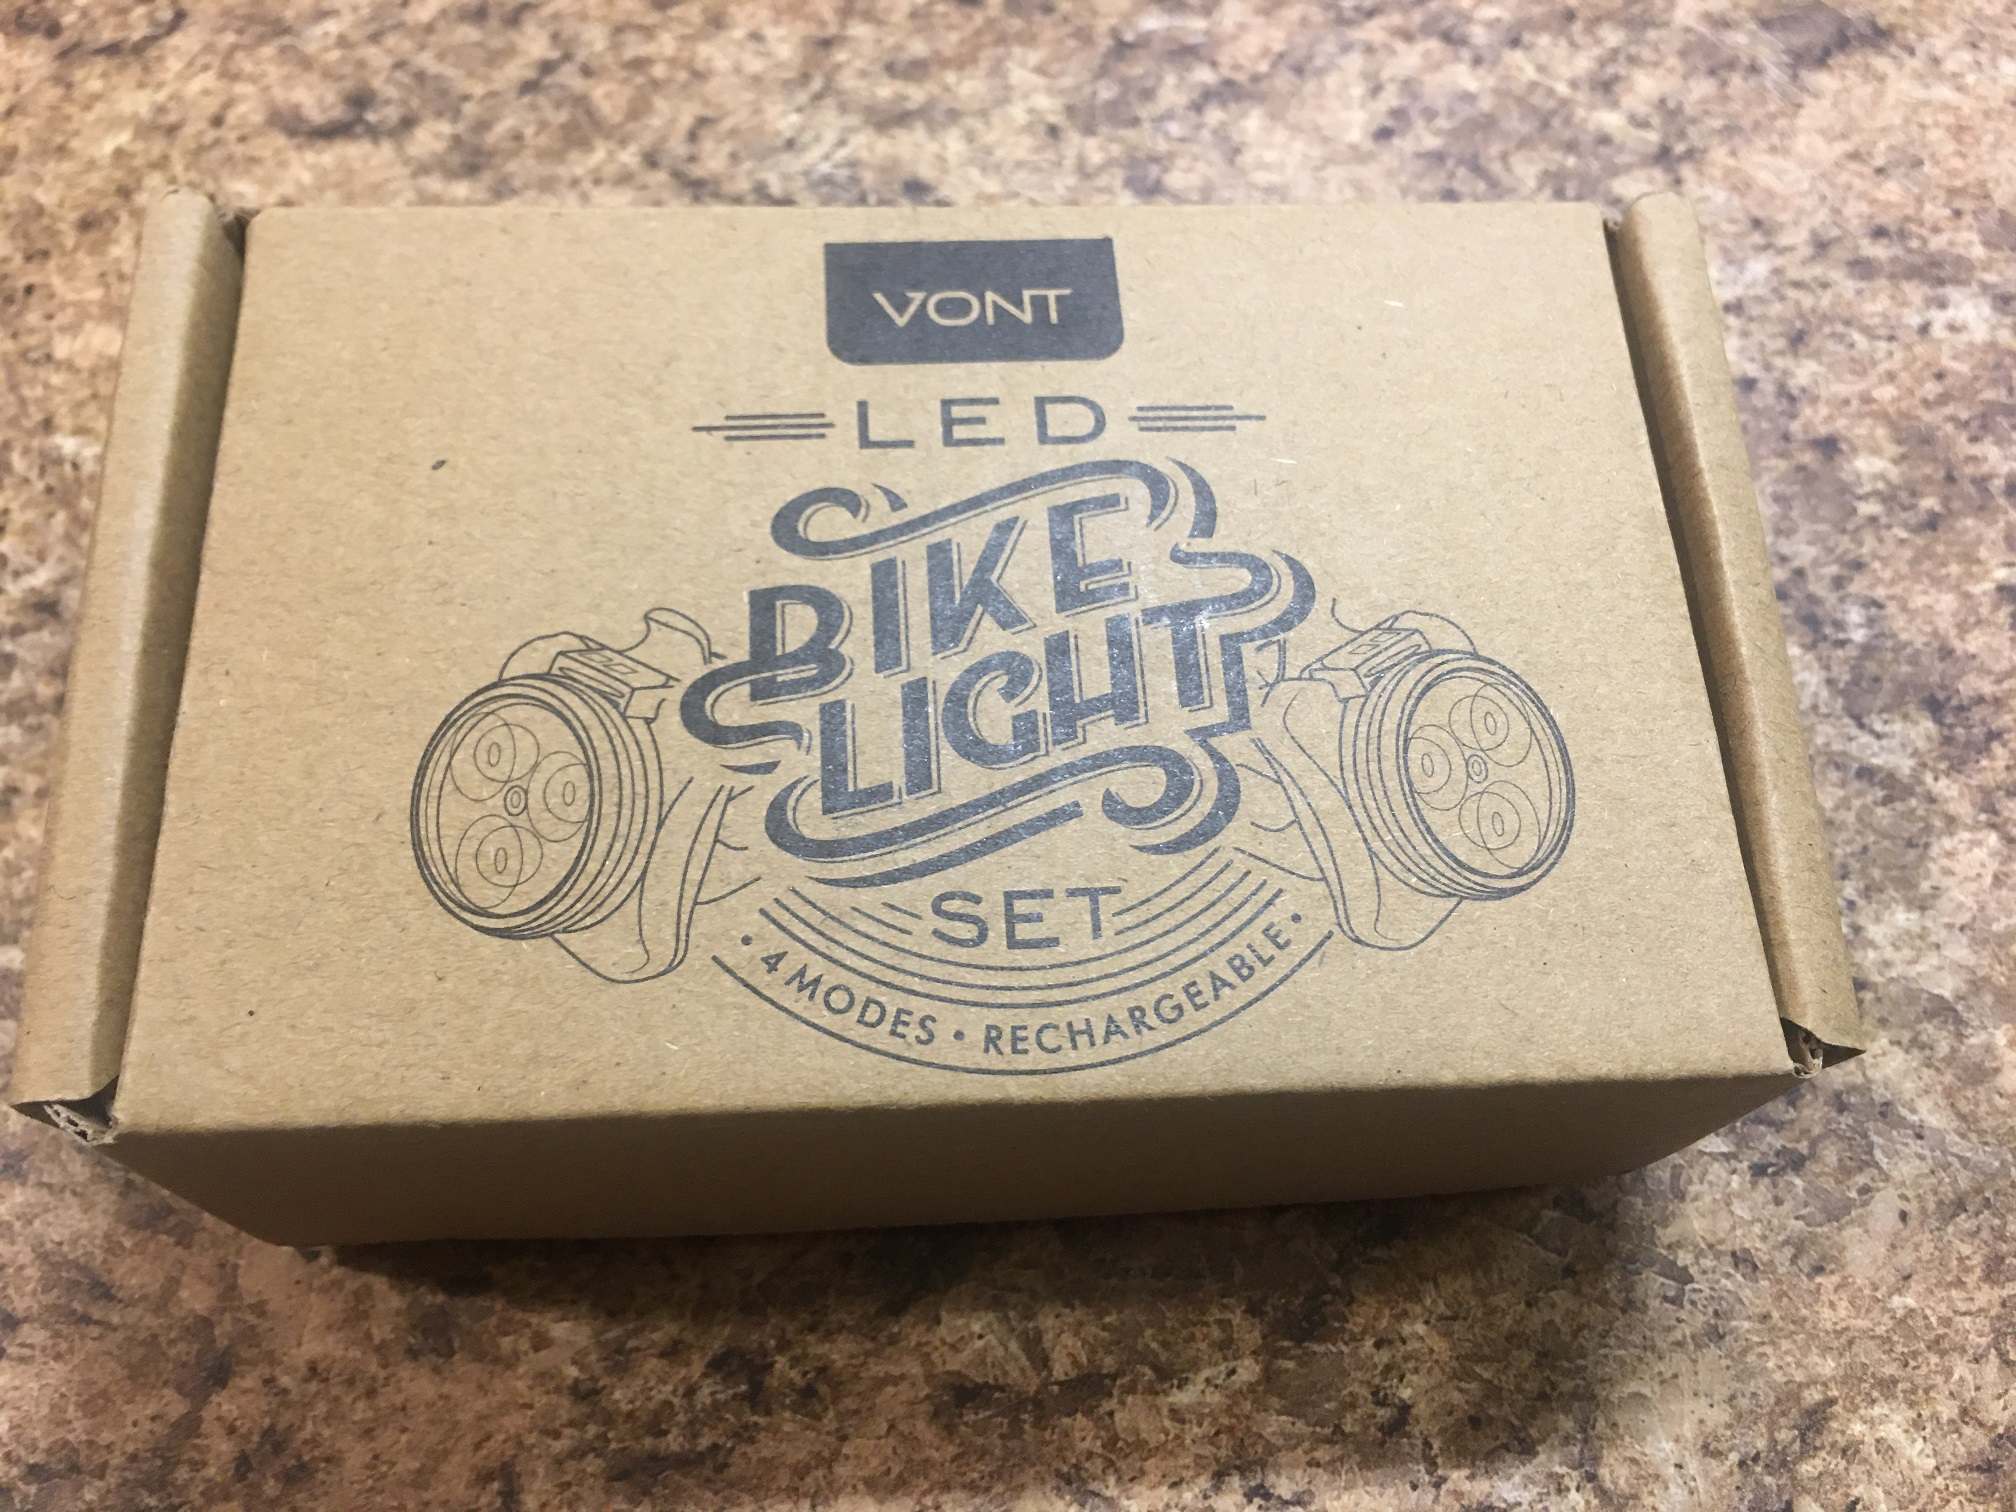 VONT rechargeable bike and hike lights red and white 4 modes